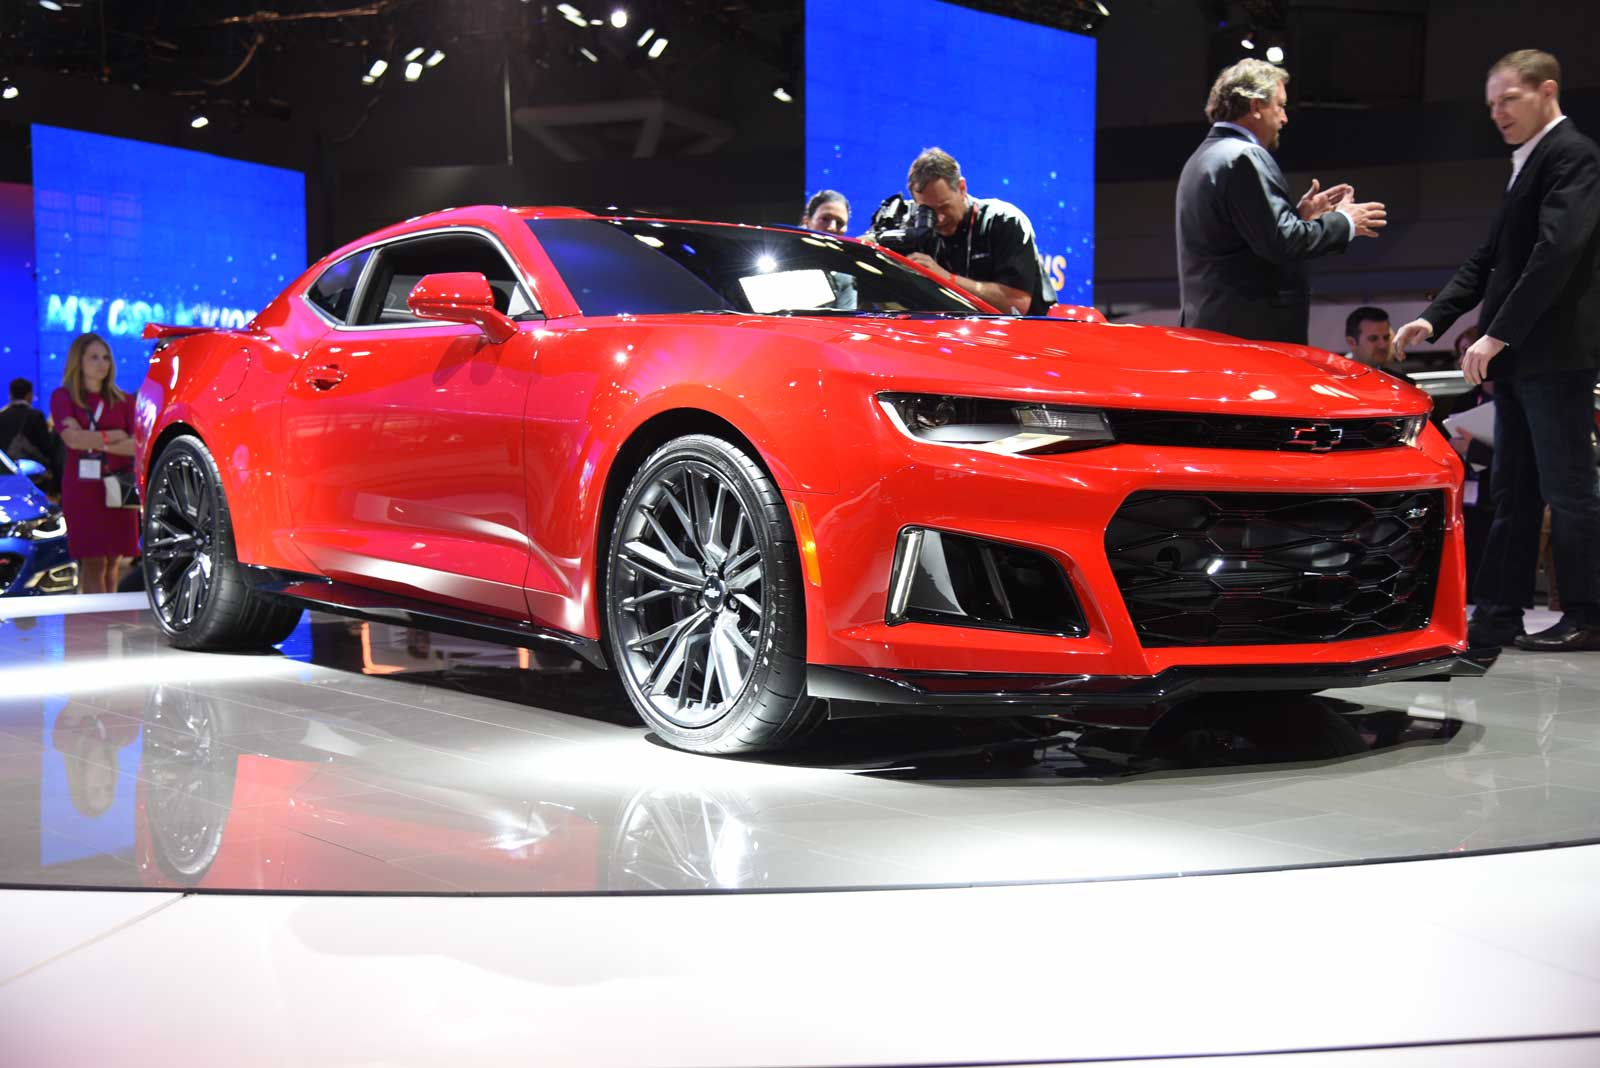 2017 Chevy Camaro ZL1 Arrives with 640 HP Sent Through 10 Gears » AutoGuide.com News